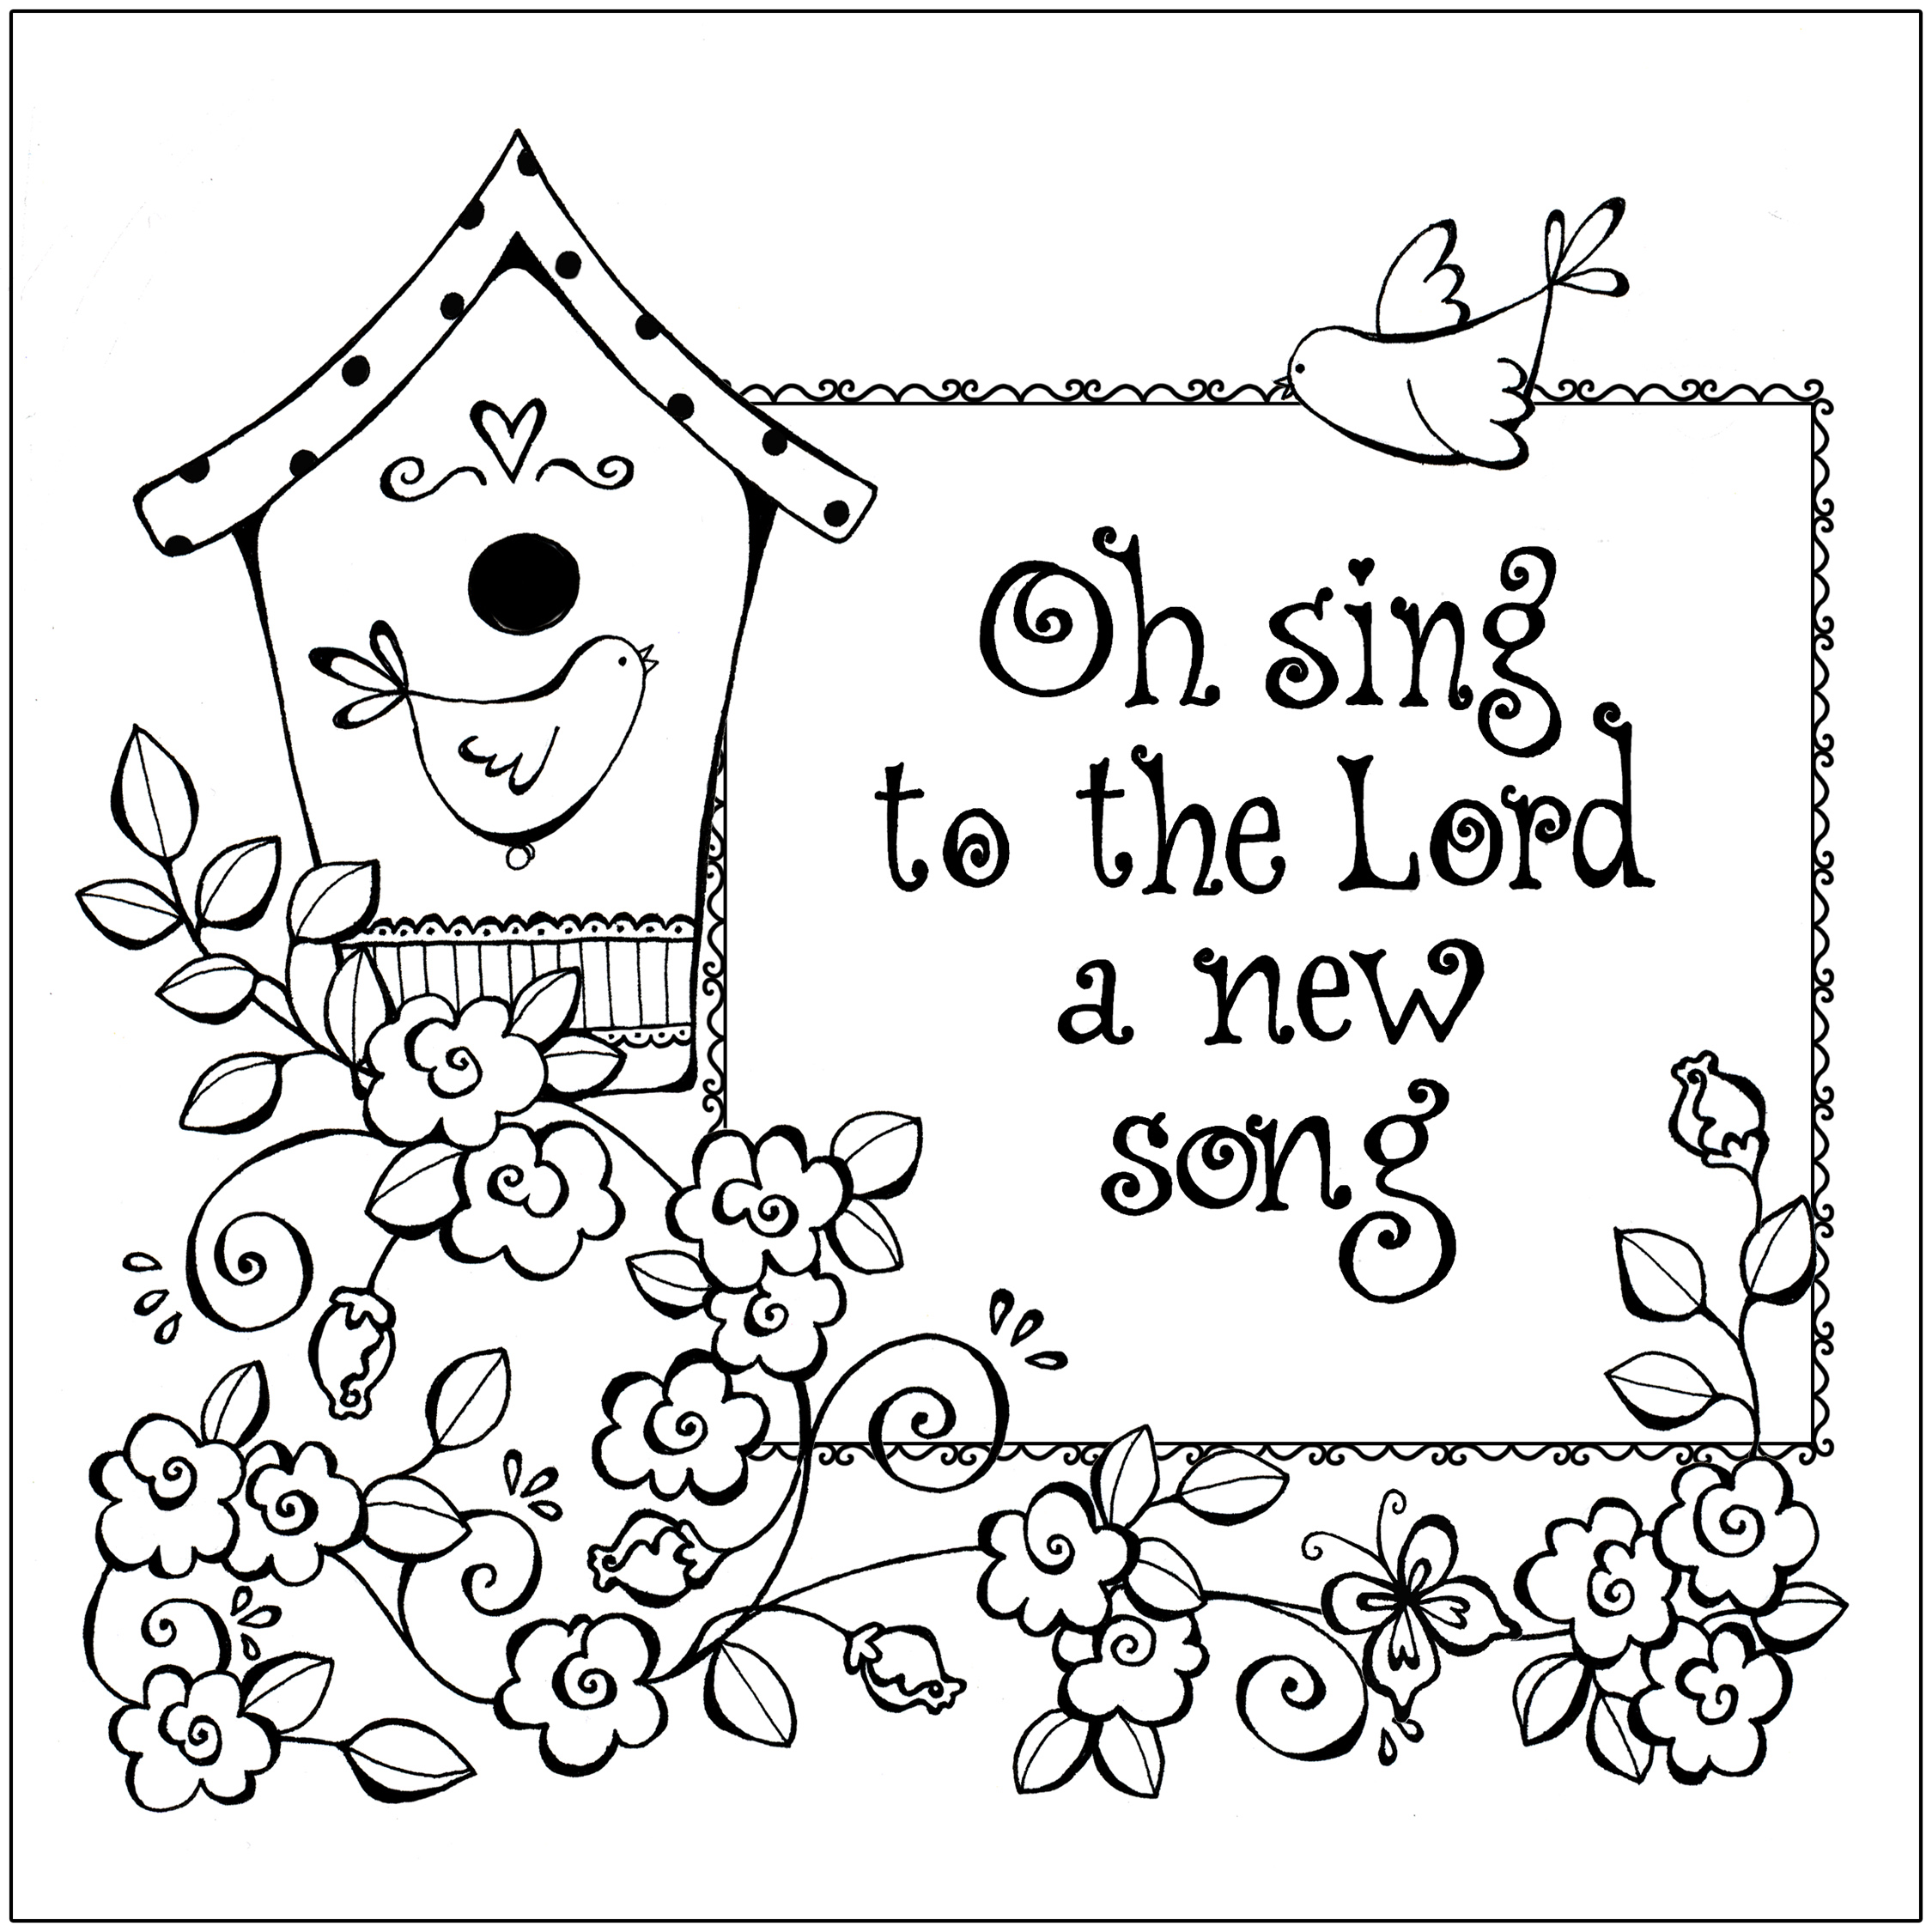 Printable coloring pages for preschoolers - Christian Coloring Page Printable Images